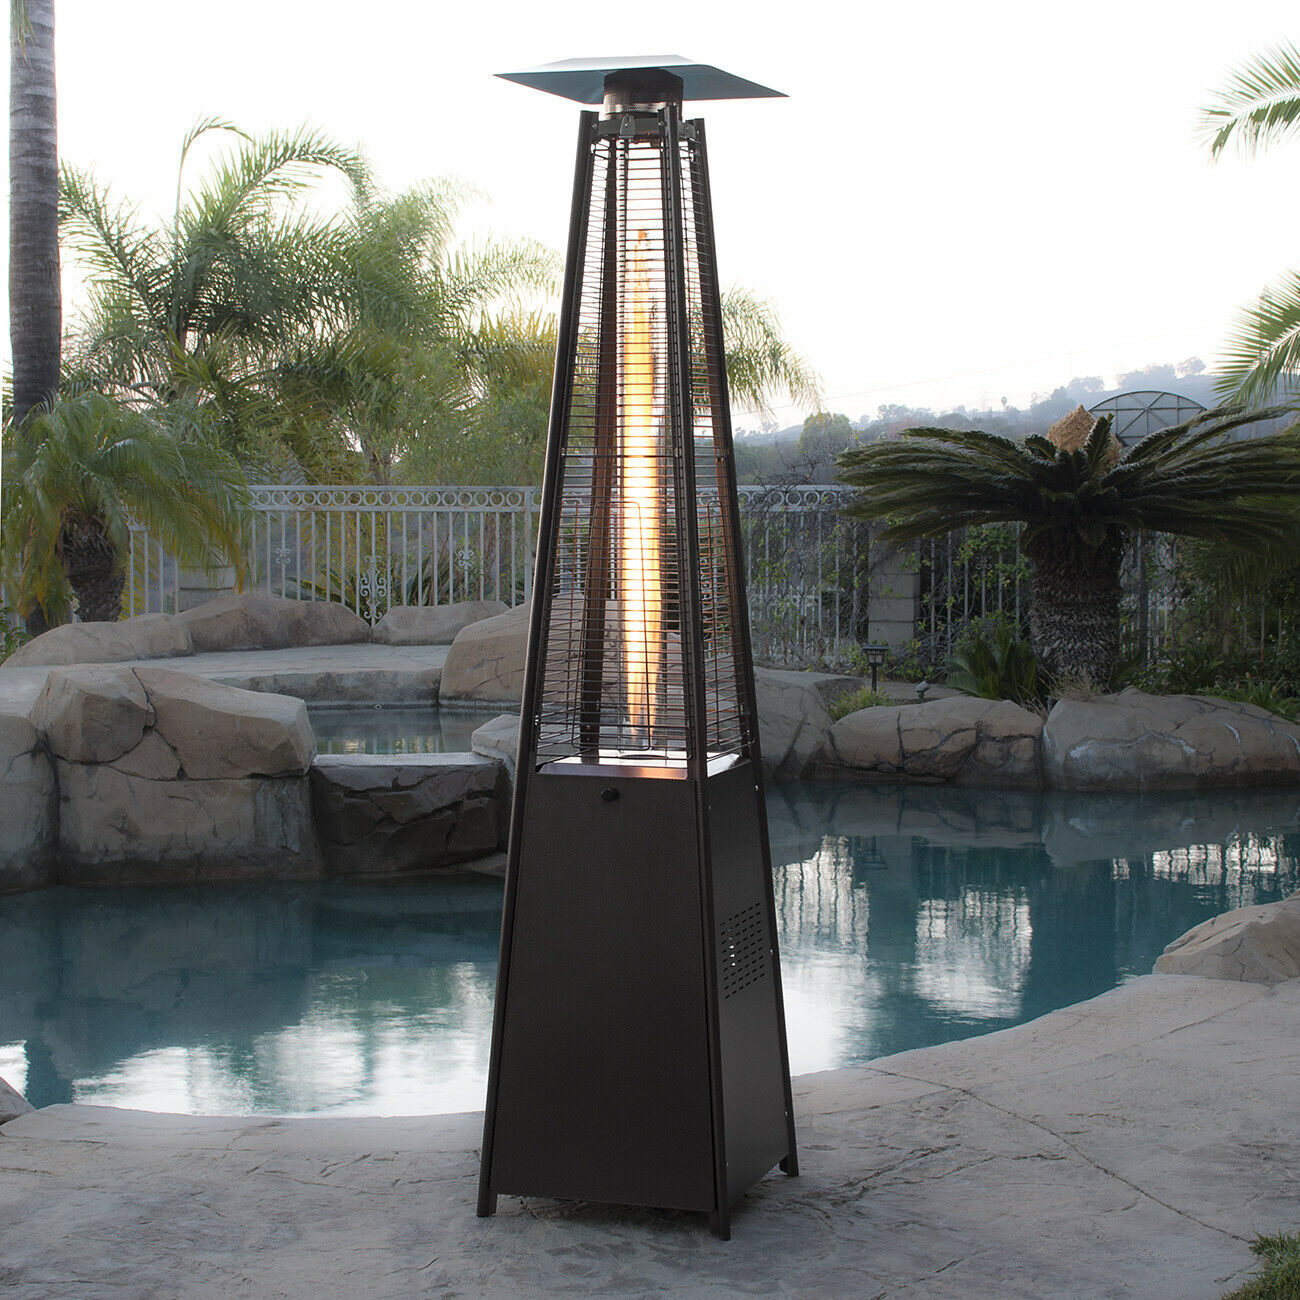 Radiance Outdoor Propane Patio Heater Gas Fire Pit Tube Lamp - Morealis